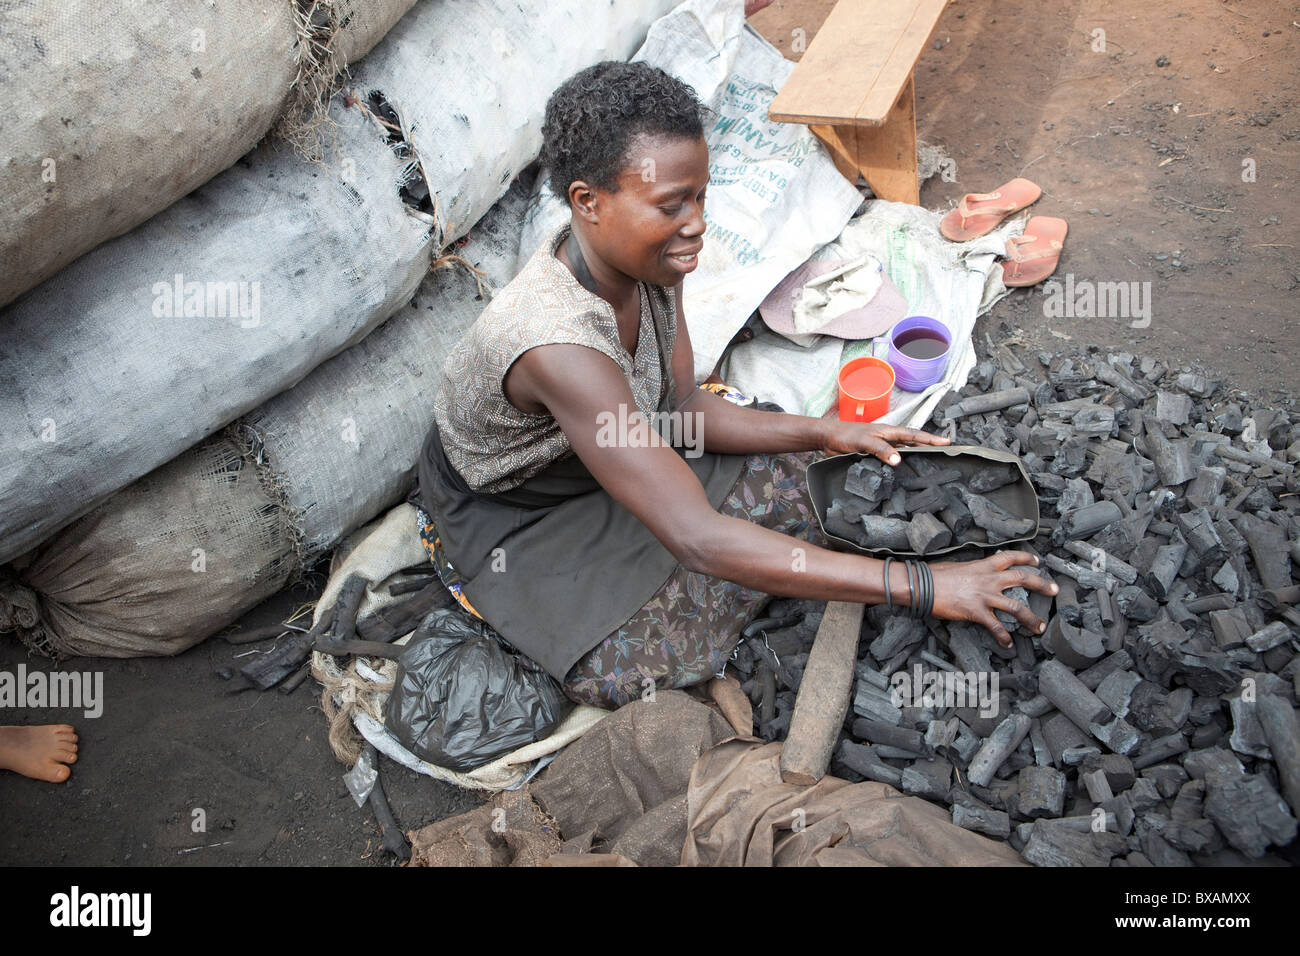 A woman sells charcoal on the streets in Jinja, Uganda, East Africa. - Stock Image